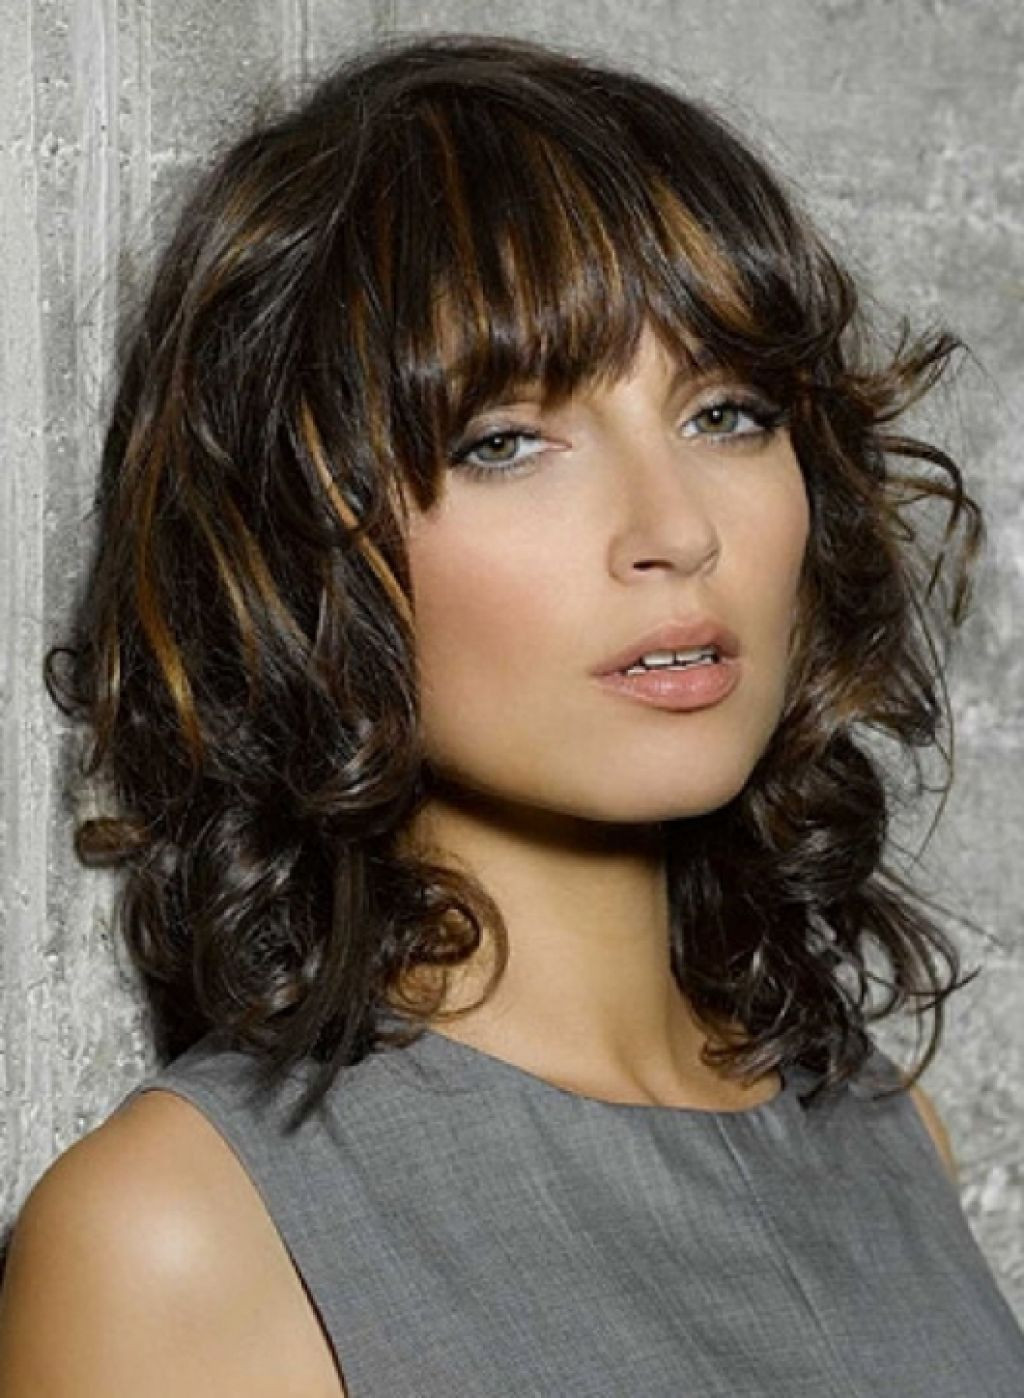 Best ideas about Cute Hairstyles For Thick Curly Hair . Save or Pin cute hairstyles for thick curly hair HairStyles Now.